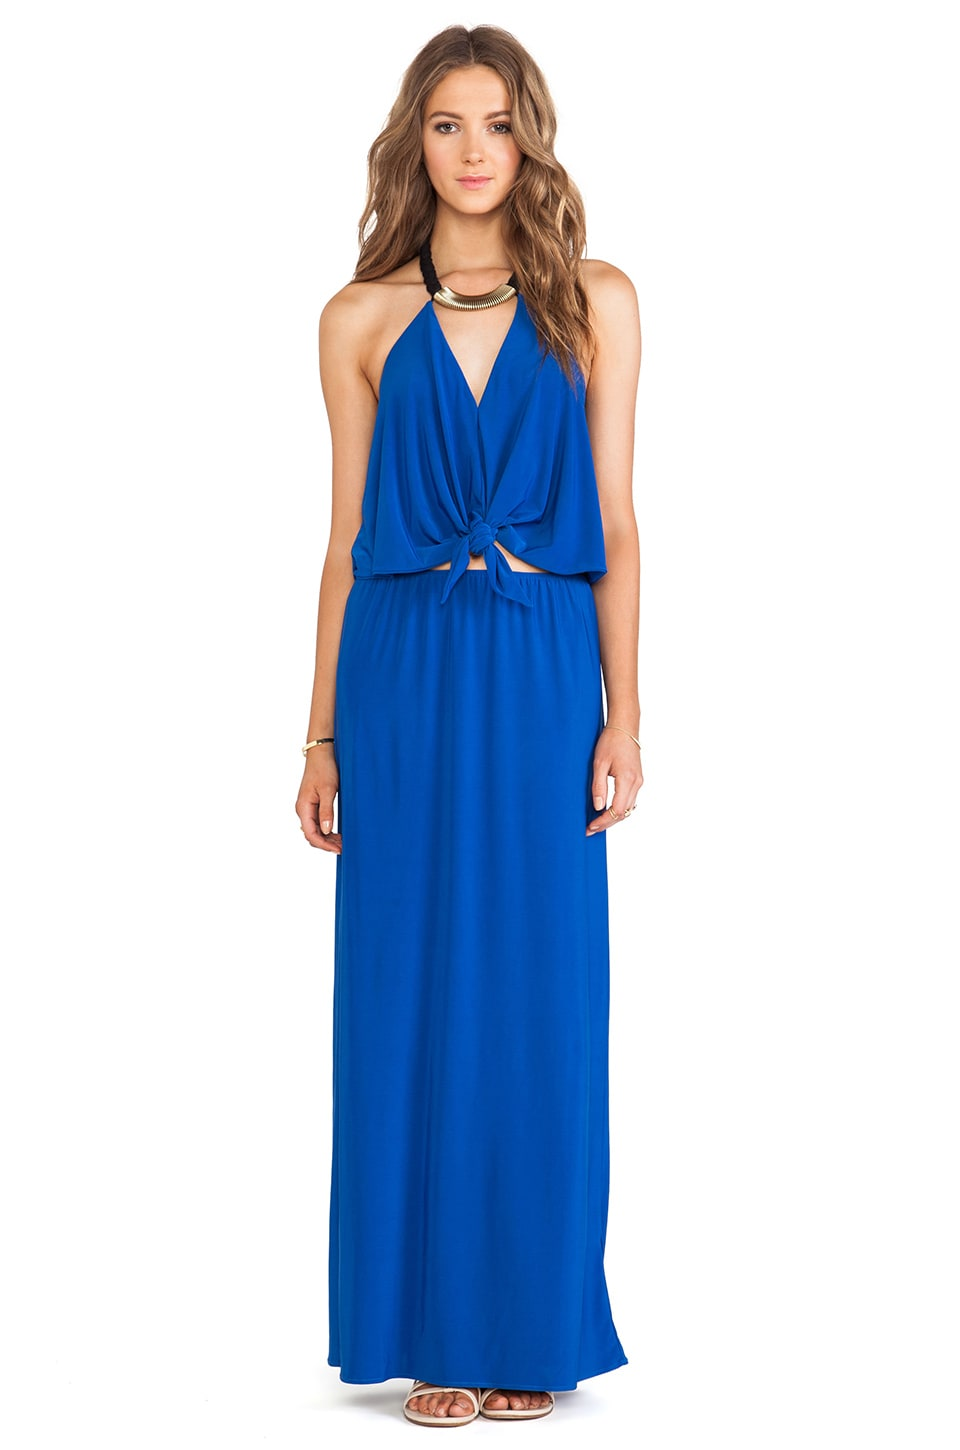 T-Bags LosAngeles Tie Front Maxi Dress in Cobalt